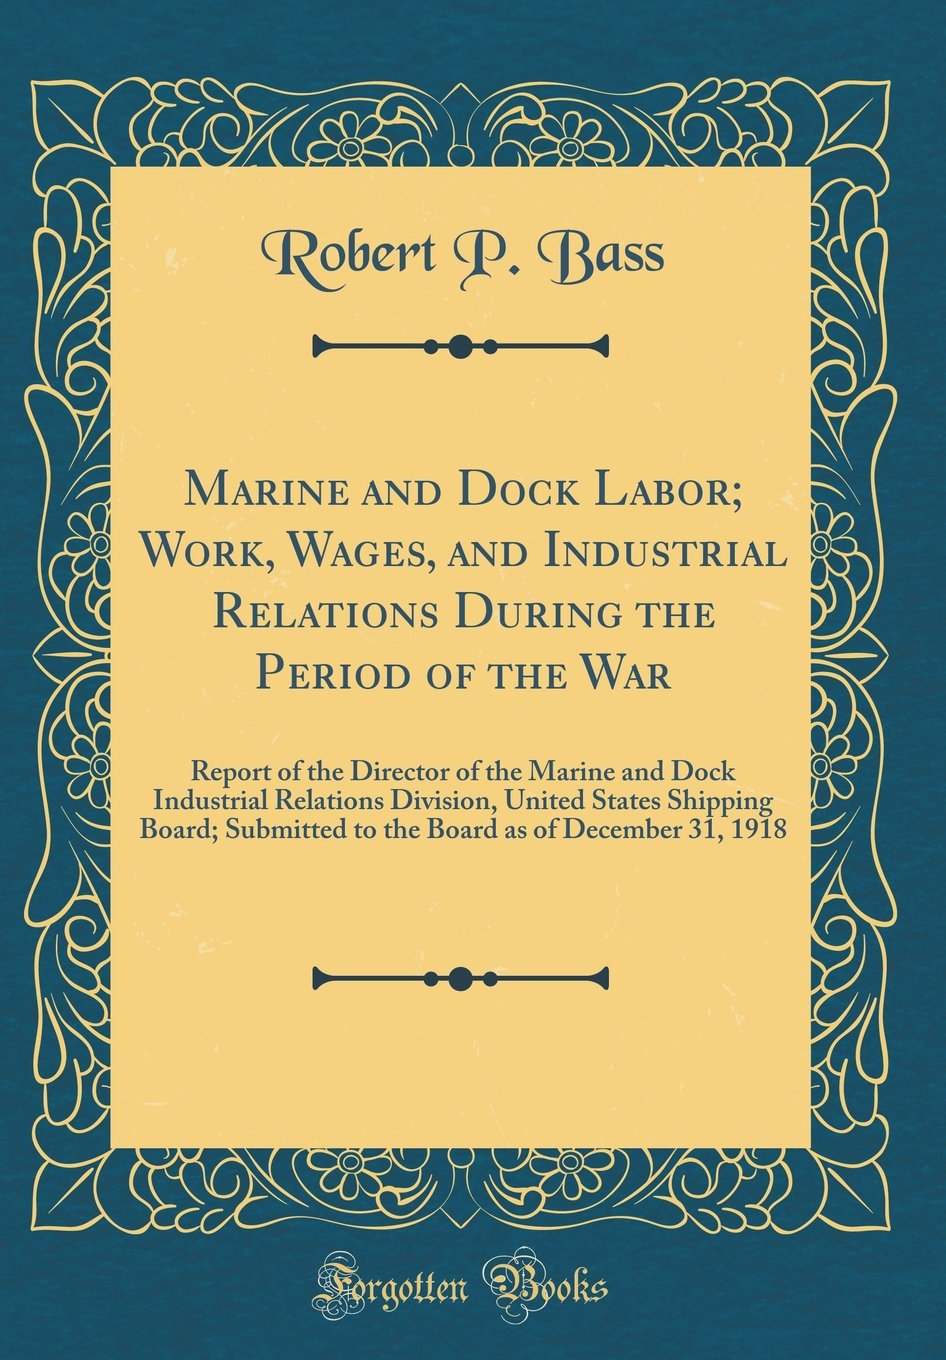 Download Marine and Dock Labor; Work, Wages, and Industrial Relations During the Period of the War: Report of the Director of the Marine and Dock Industrial ... to the Board as of December 31, 1918 pdf